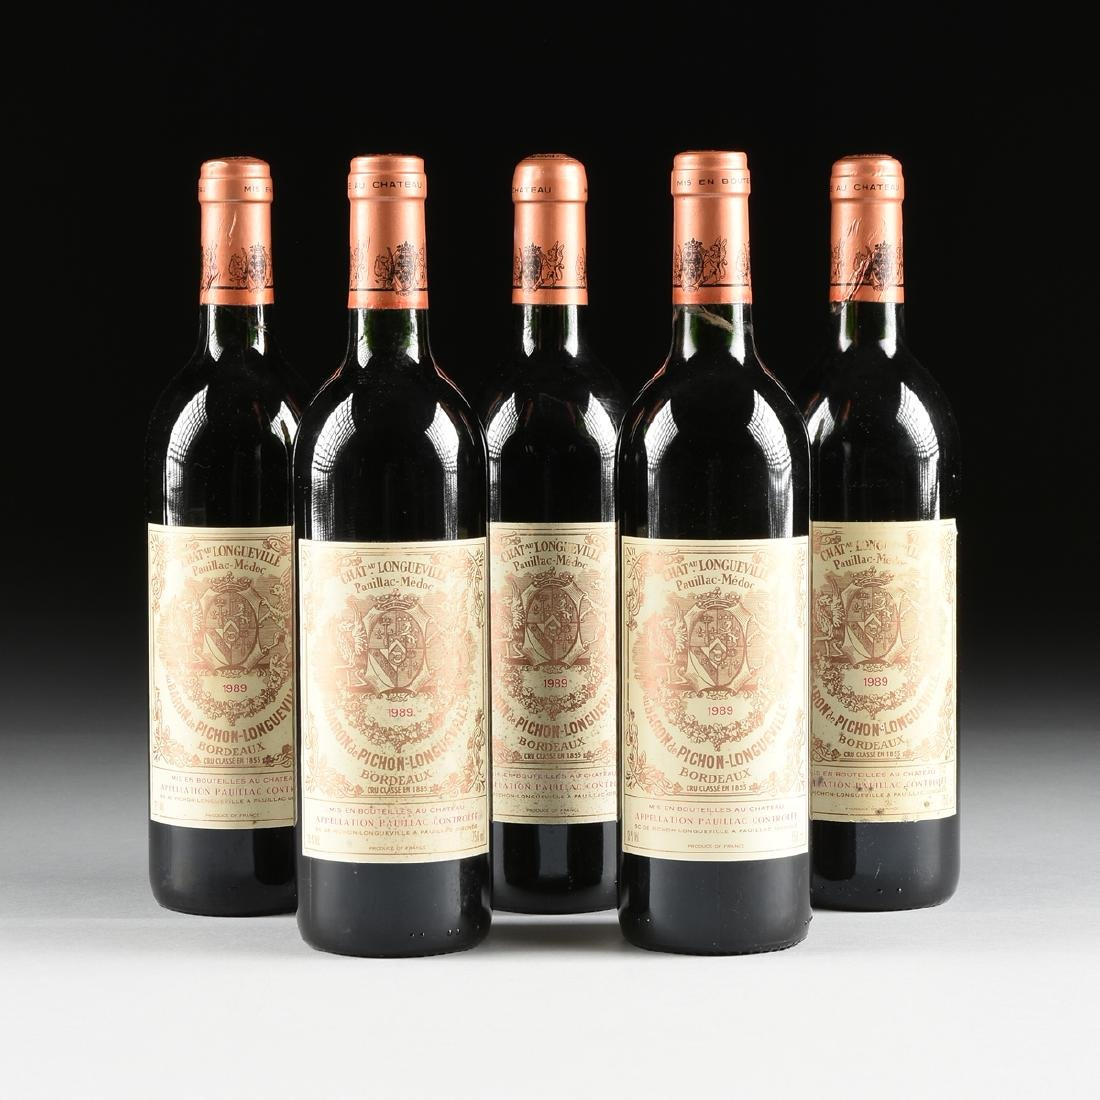 A GROUP OF FIVE BOTTLES OF 1989 CHÂTEAU